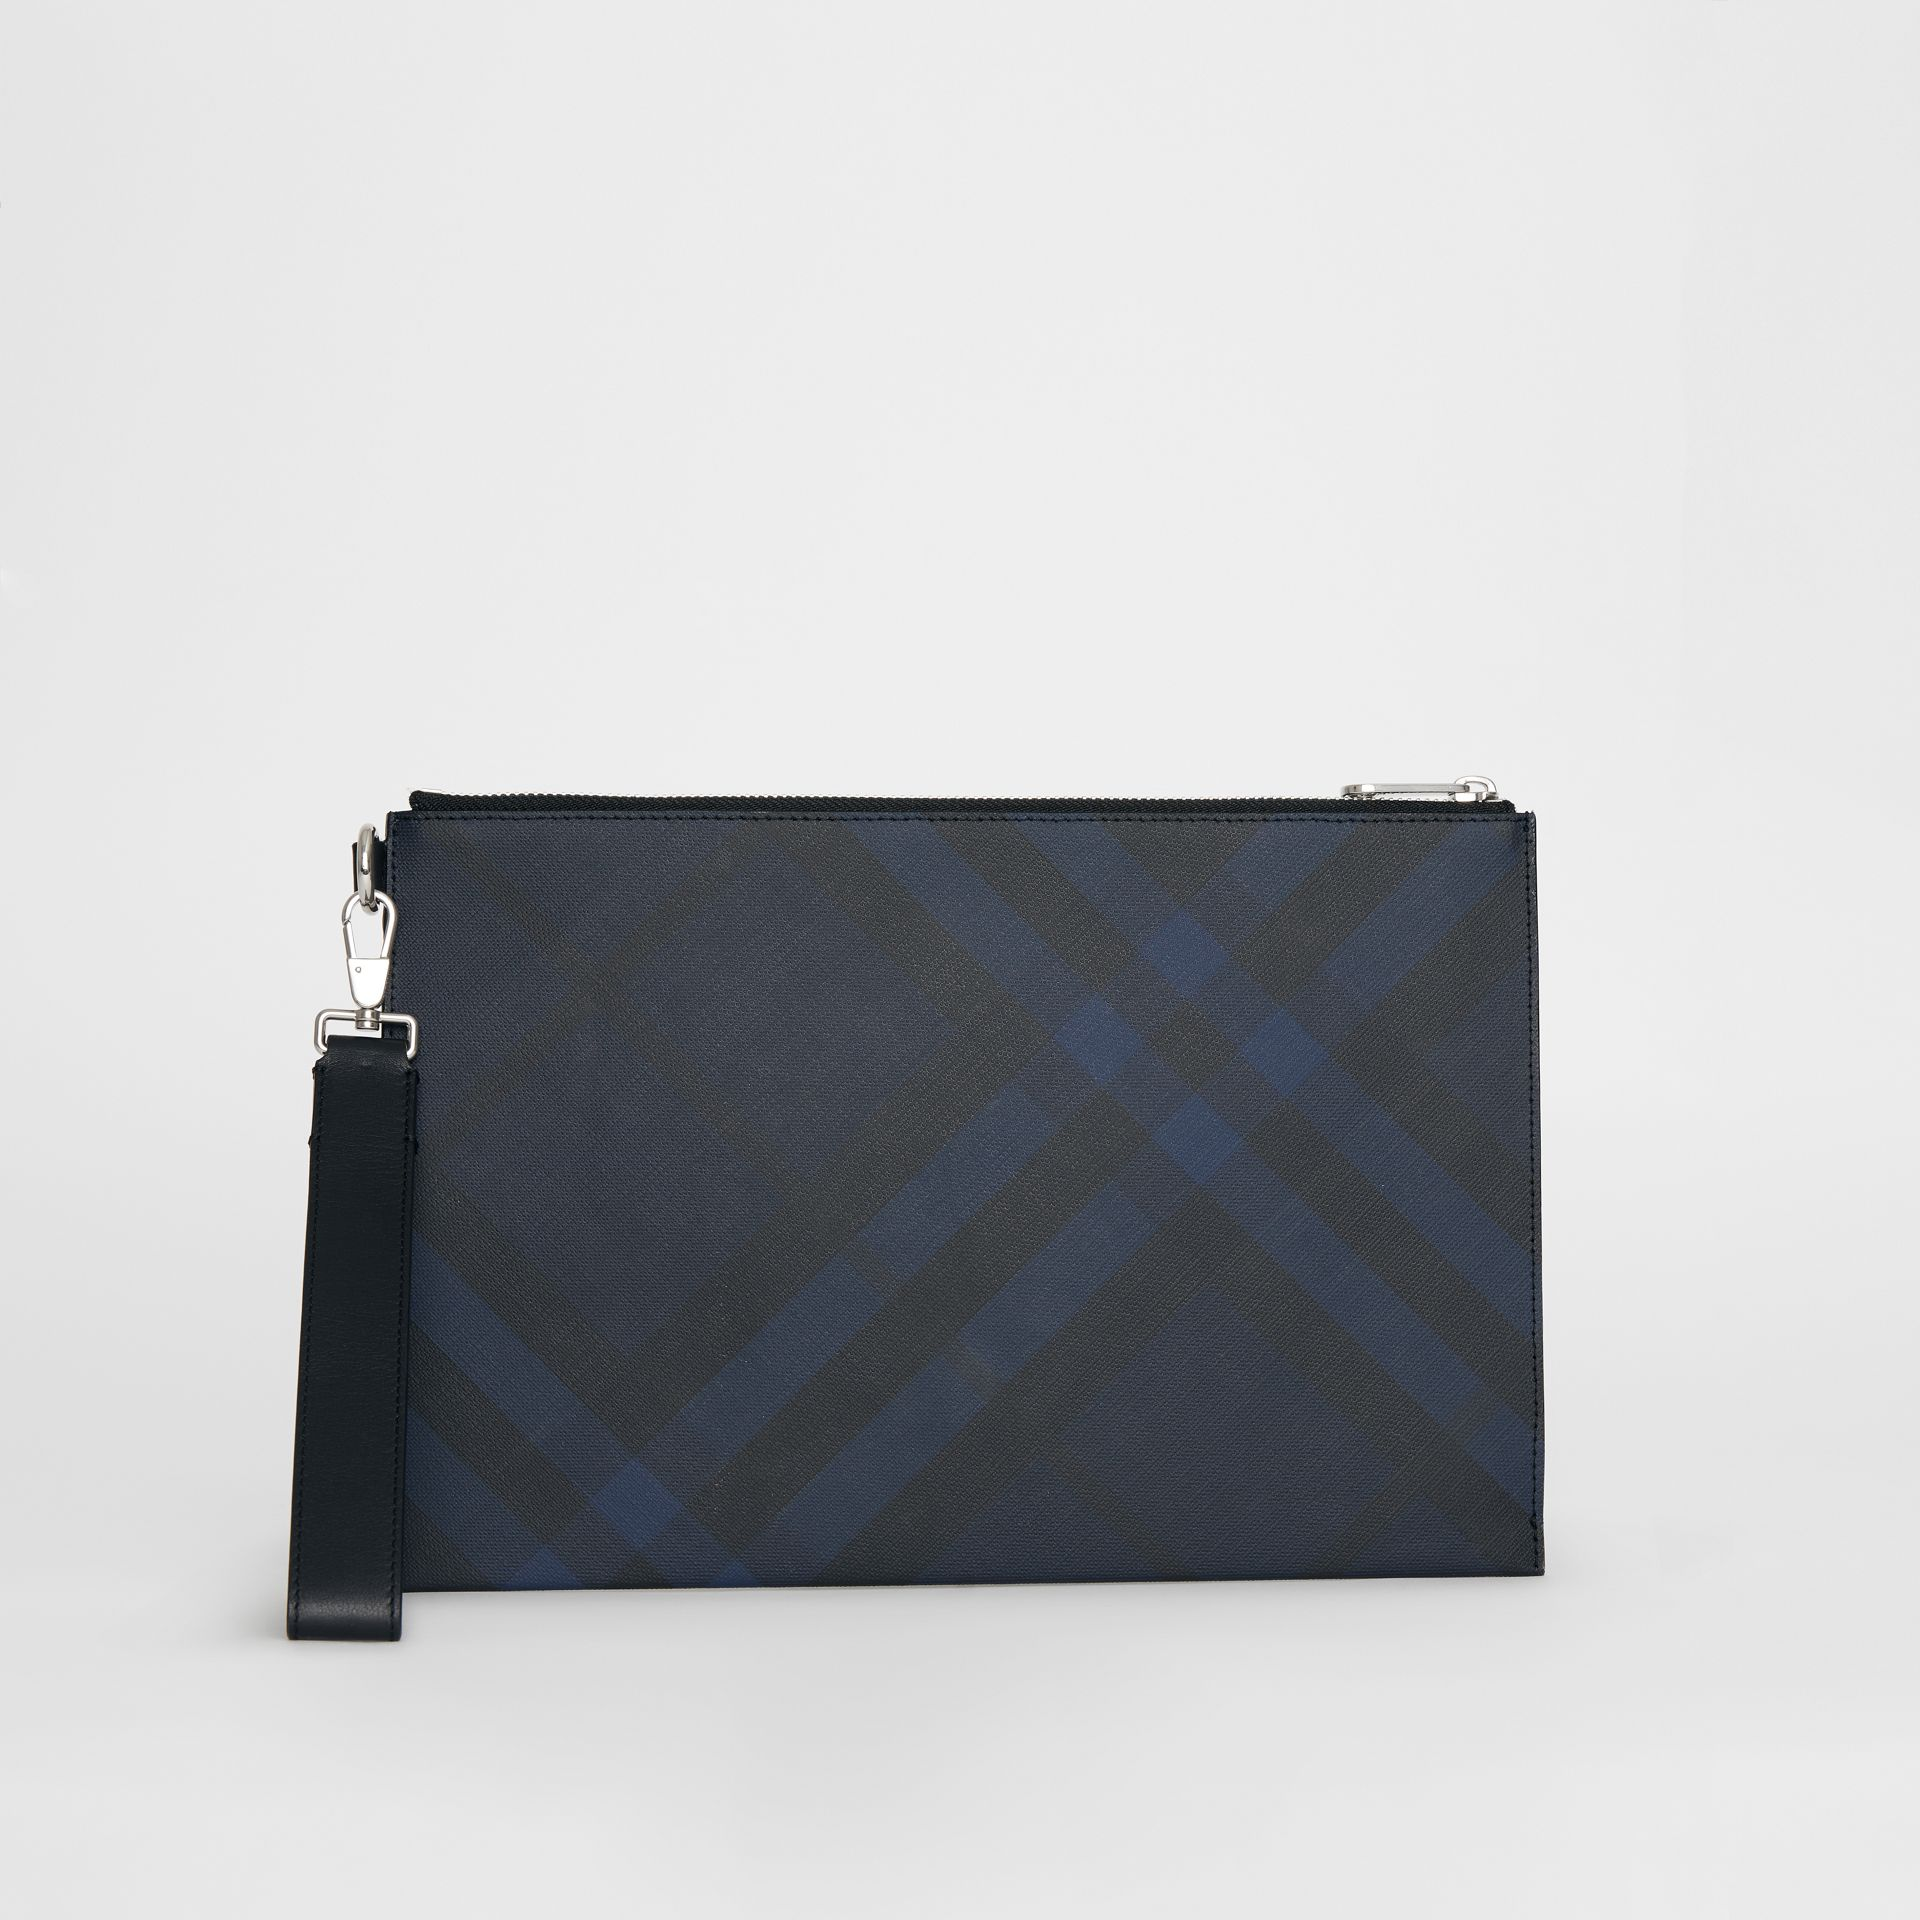 Pochette zippée à motif London check (Marine/noir) - Homme | Burberry - photo de la galerie 4